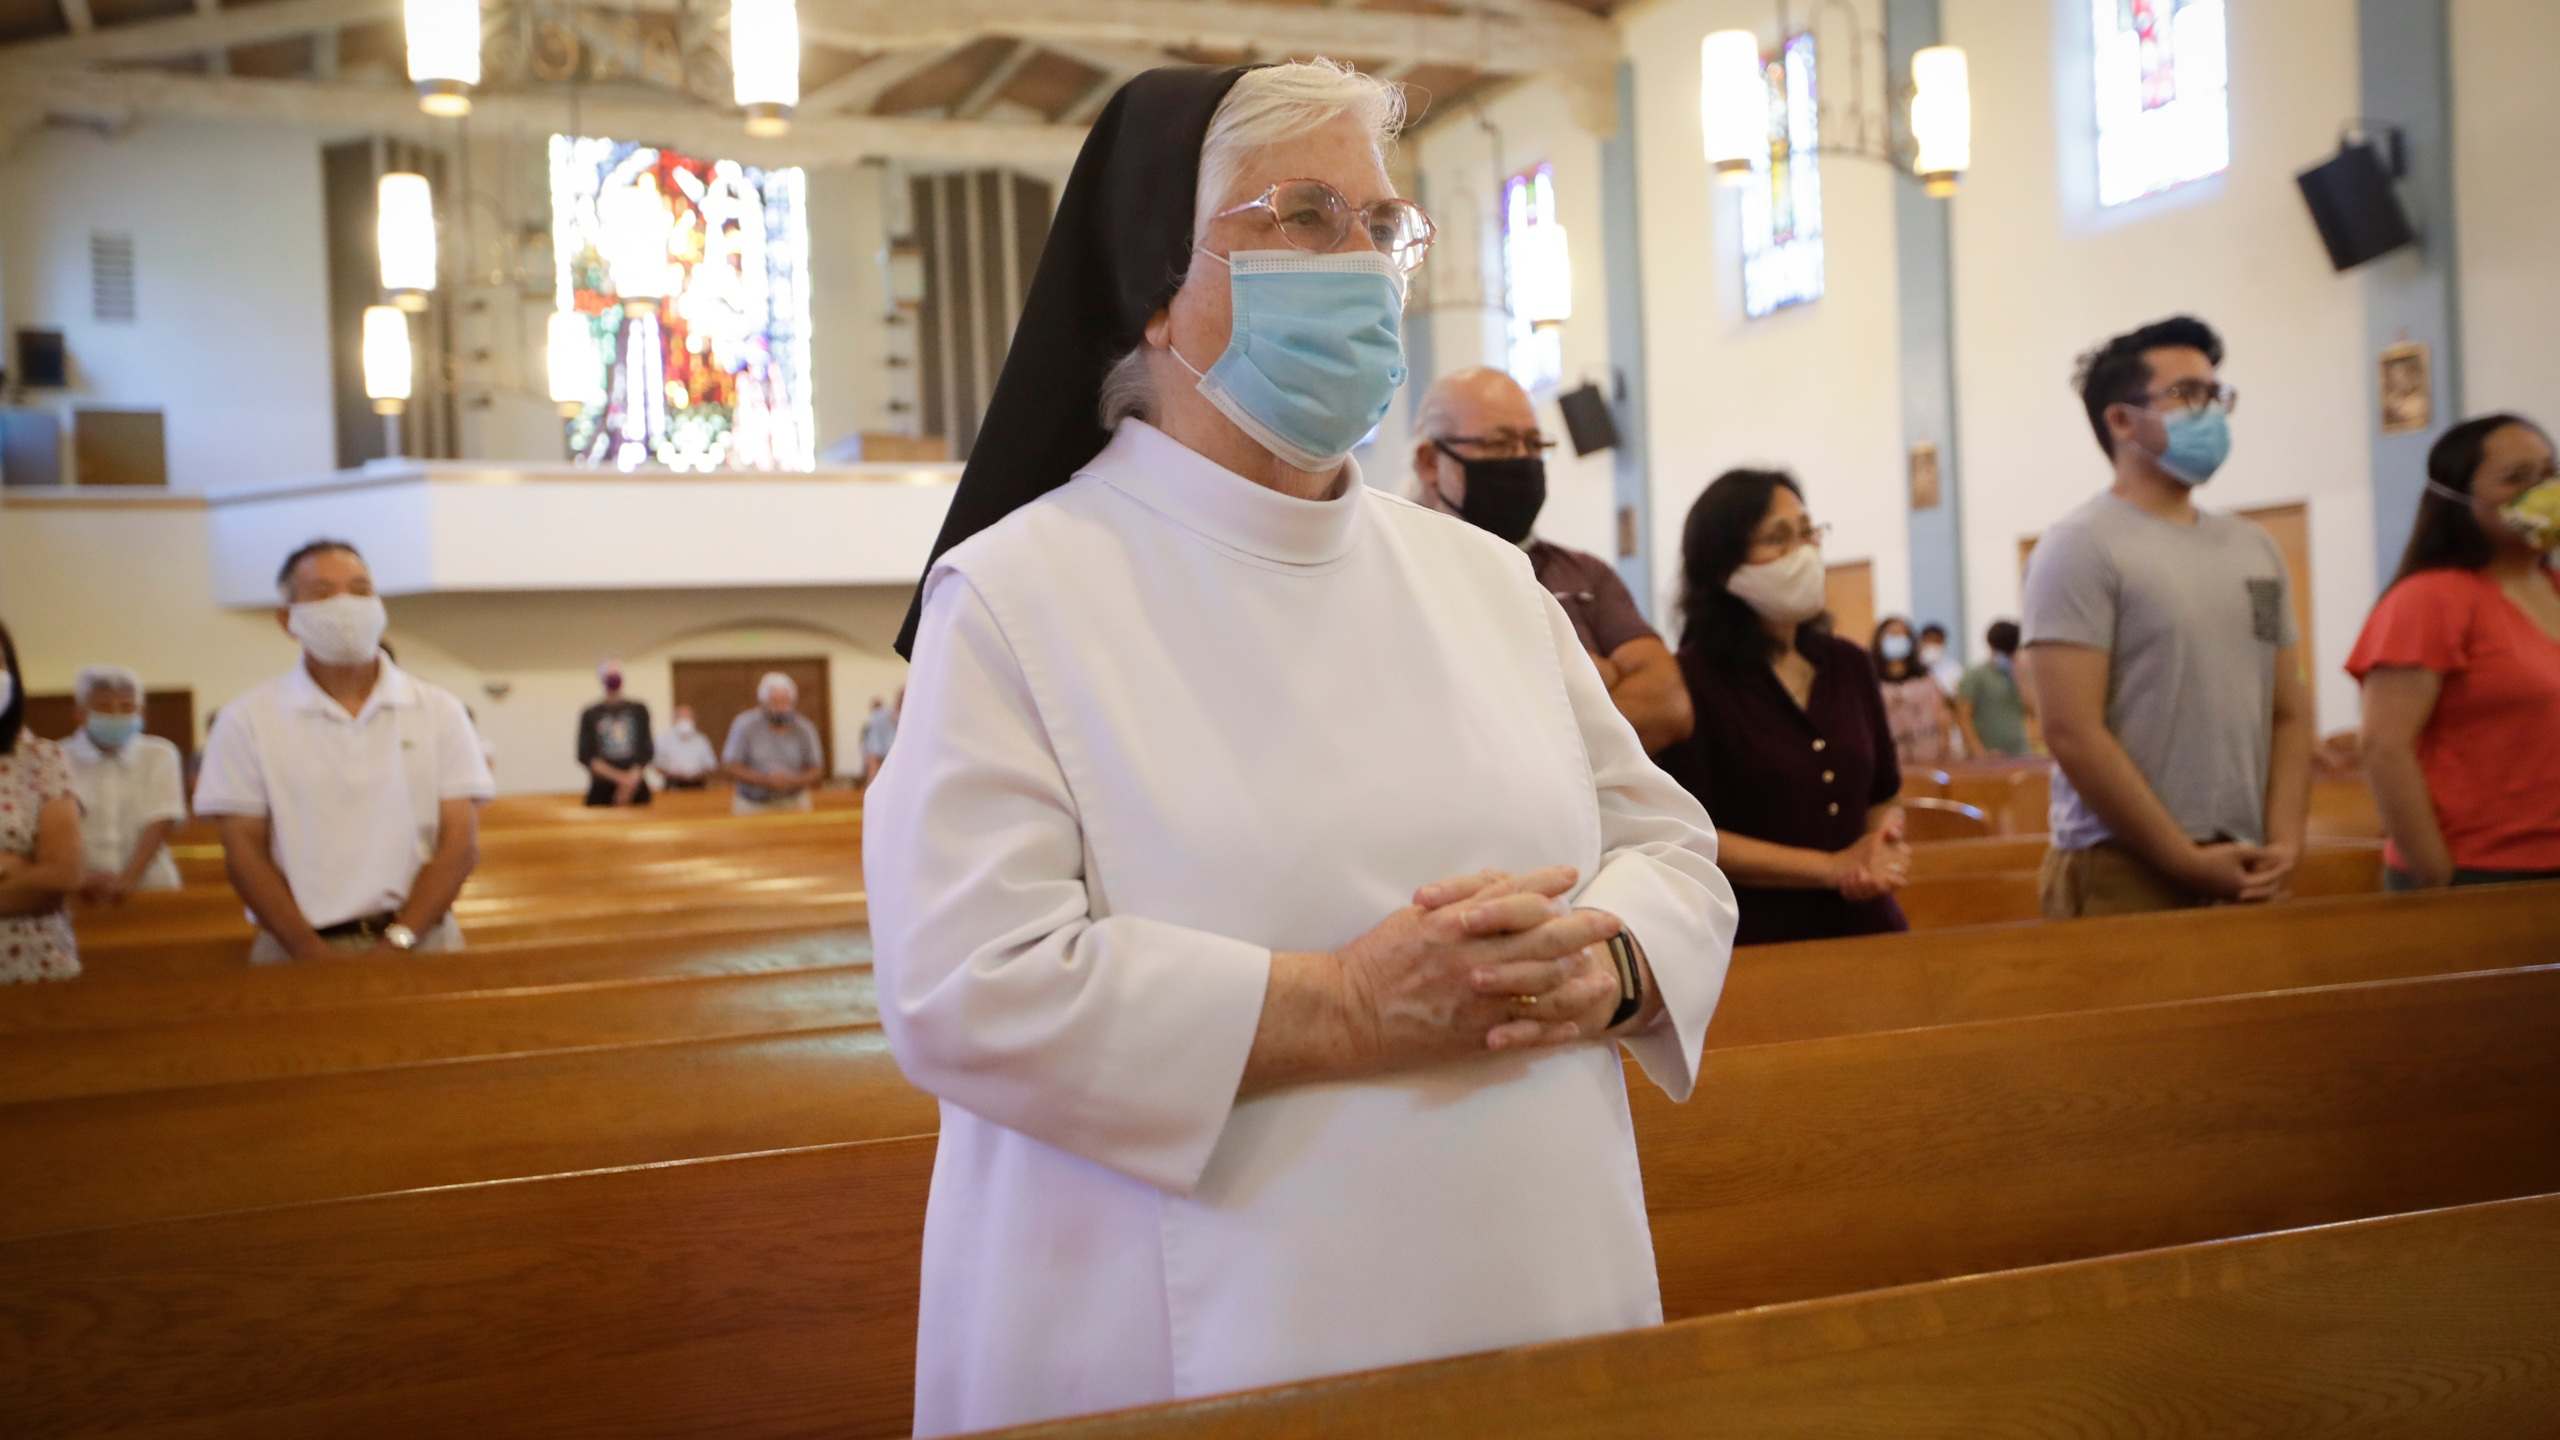 A nun wears a face mask during a service at the San Gabriel Mission, Sunday, July 12, 2020, in San Gabriel amid the coronavirus pandemic. (AP Photo/Marcio Jose Sanchez)